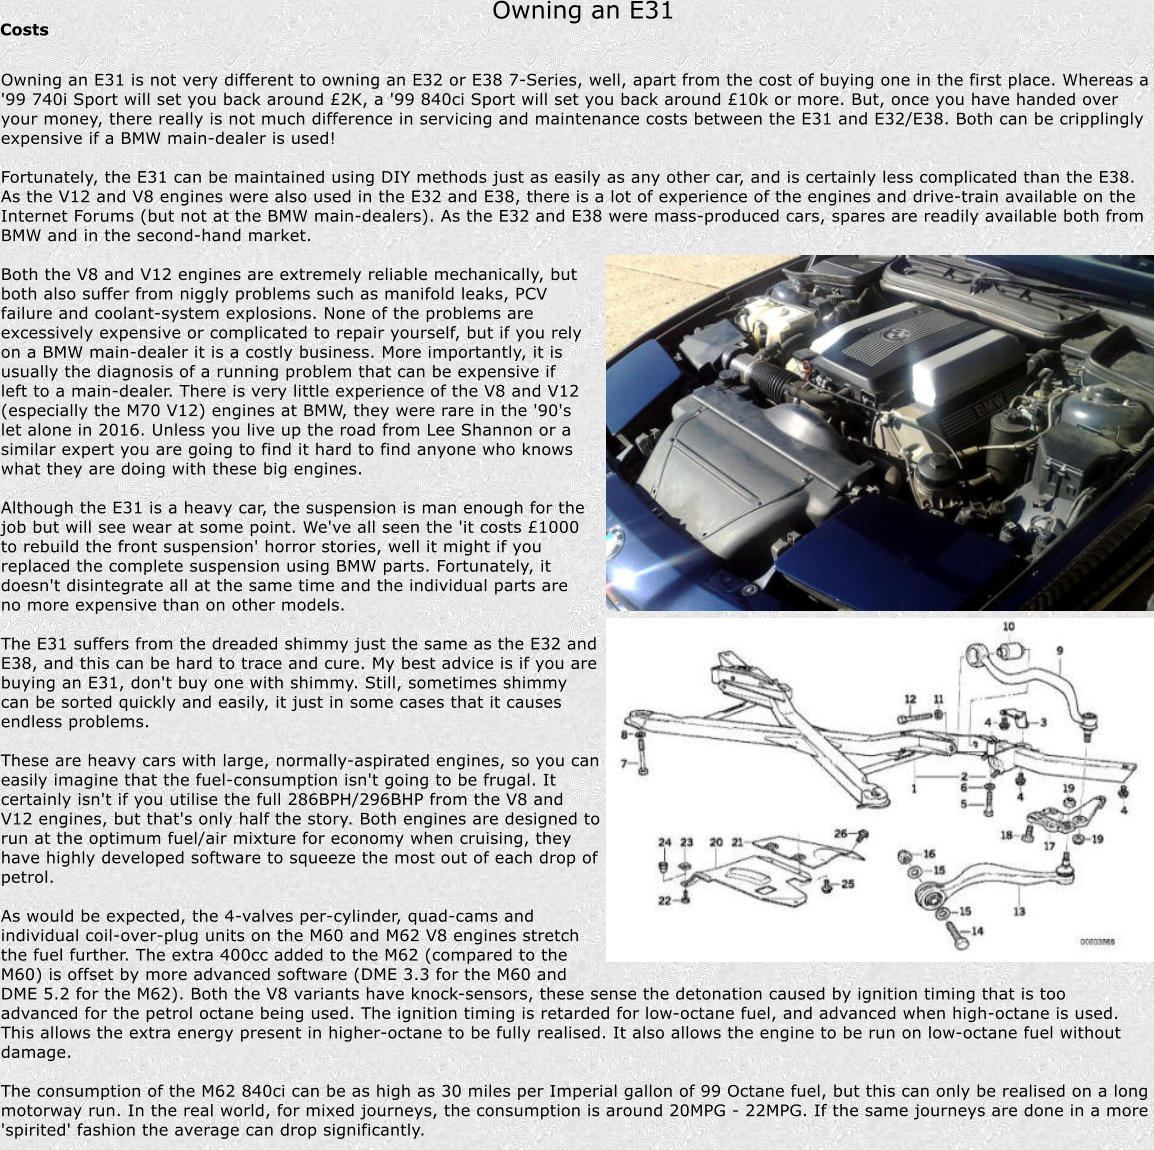 Problems With Bmw V8 Engine: Timm's BMW E31 8-Series Buying Guide